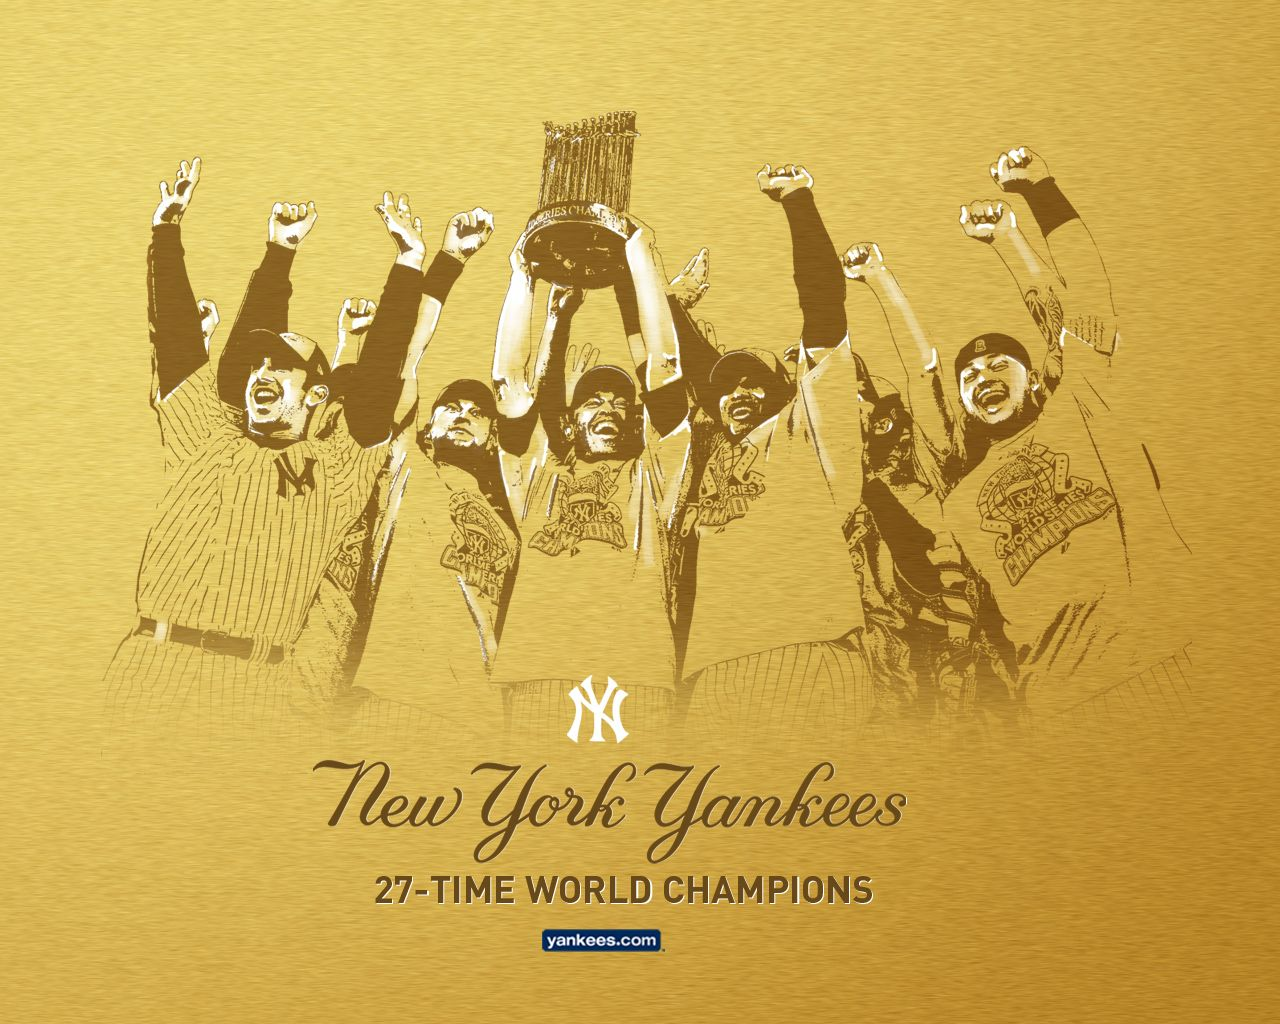 Love my Yankees | Creativity | Pinterest | Champs and Scores